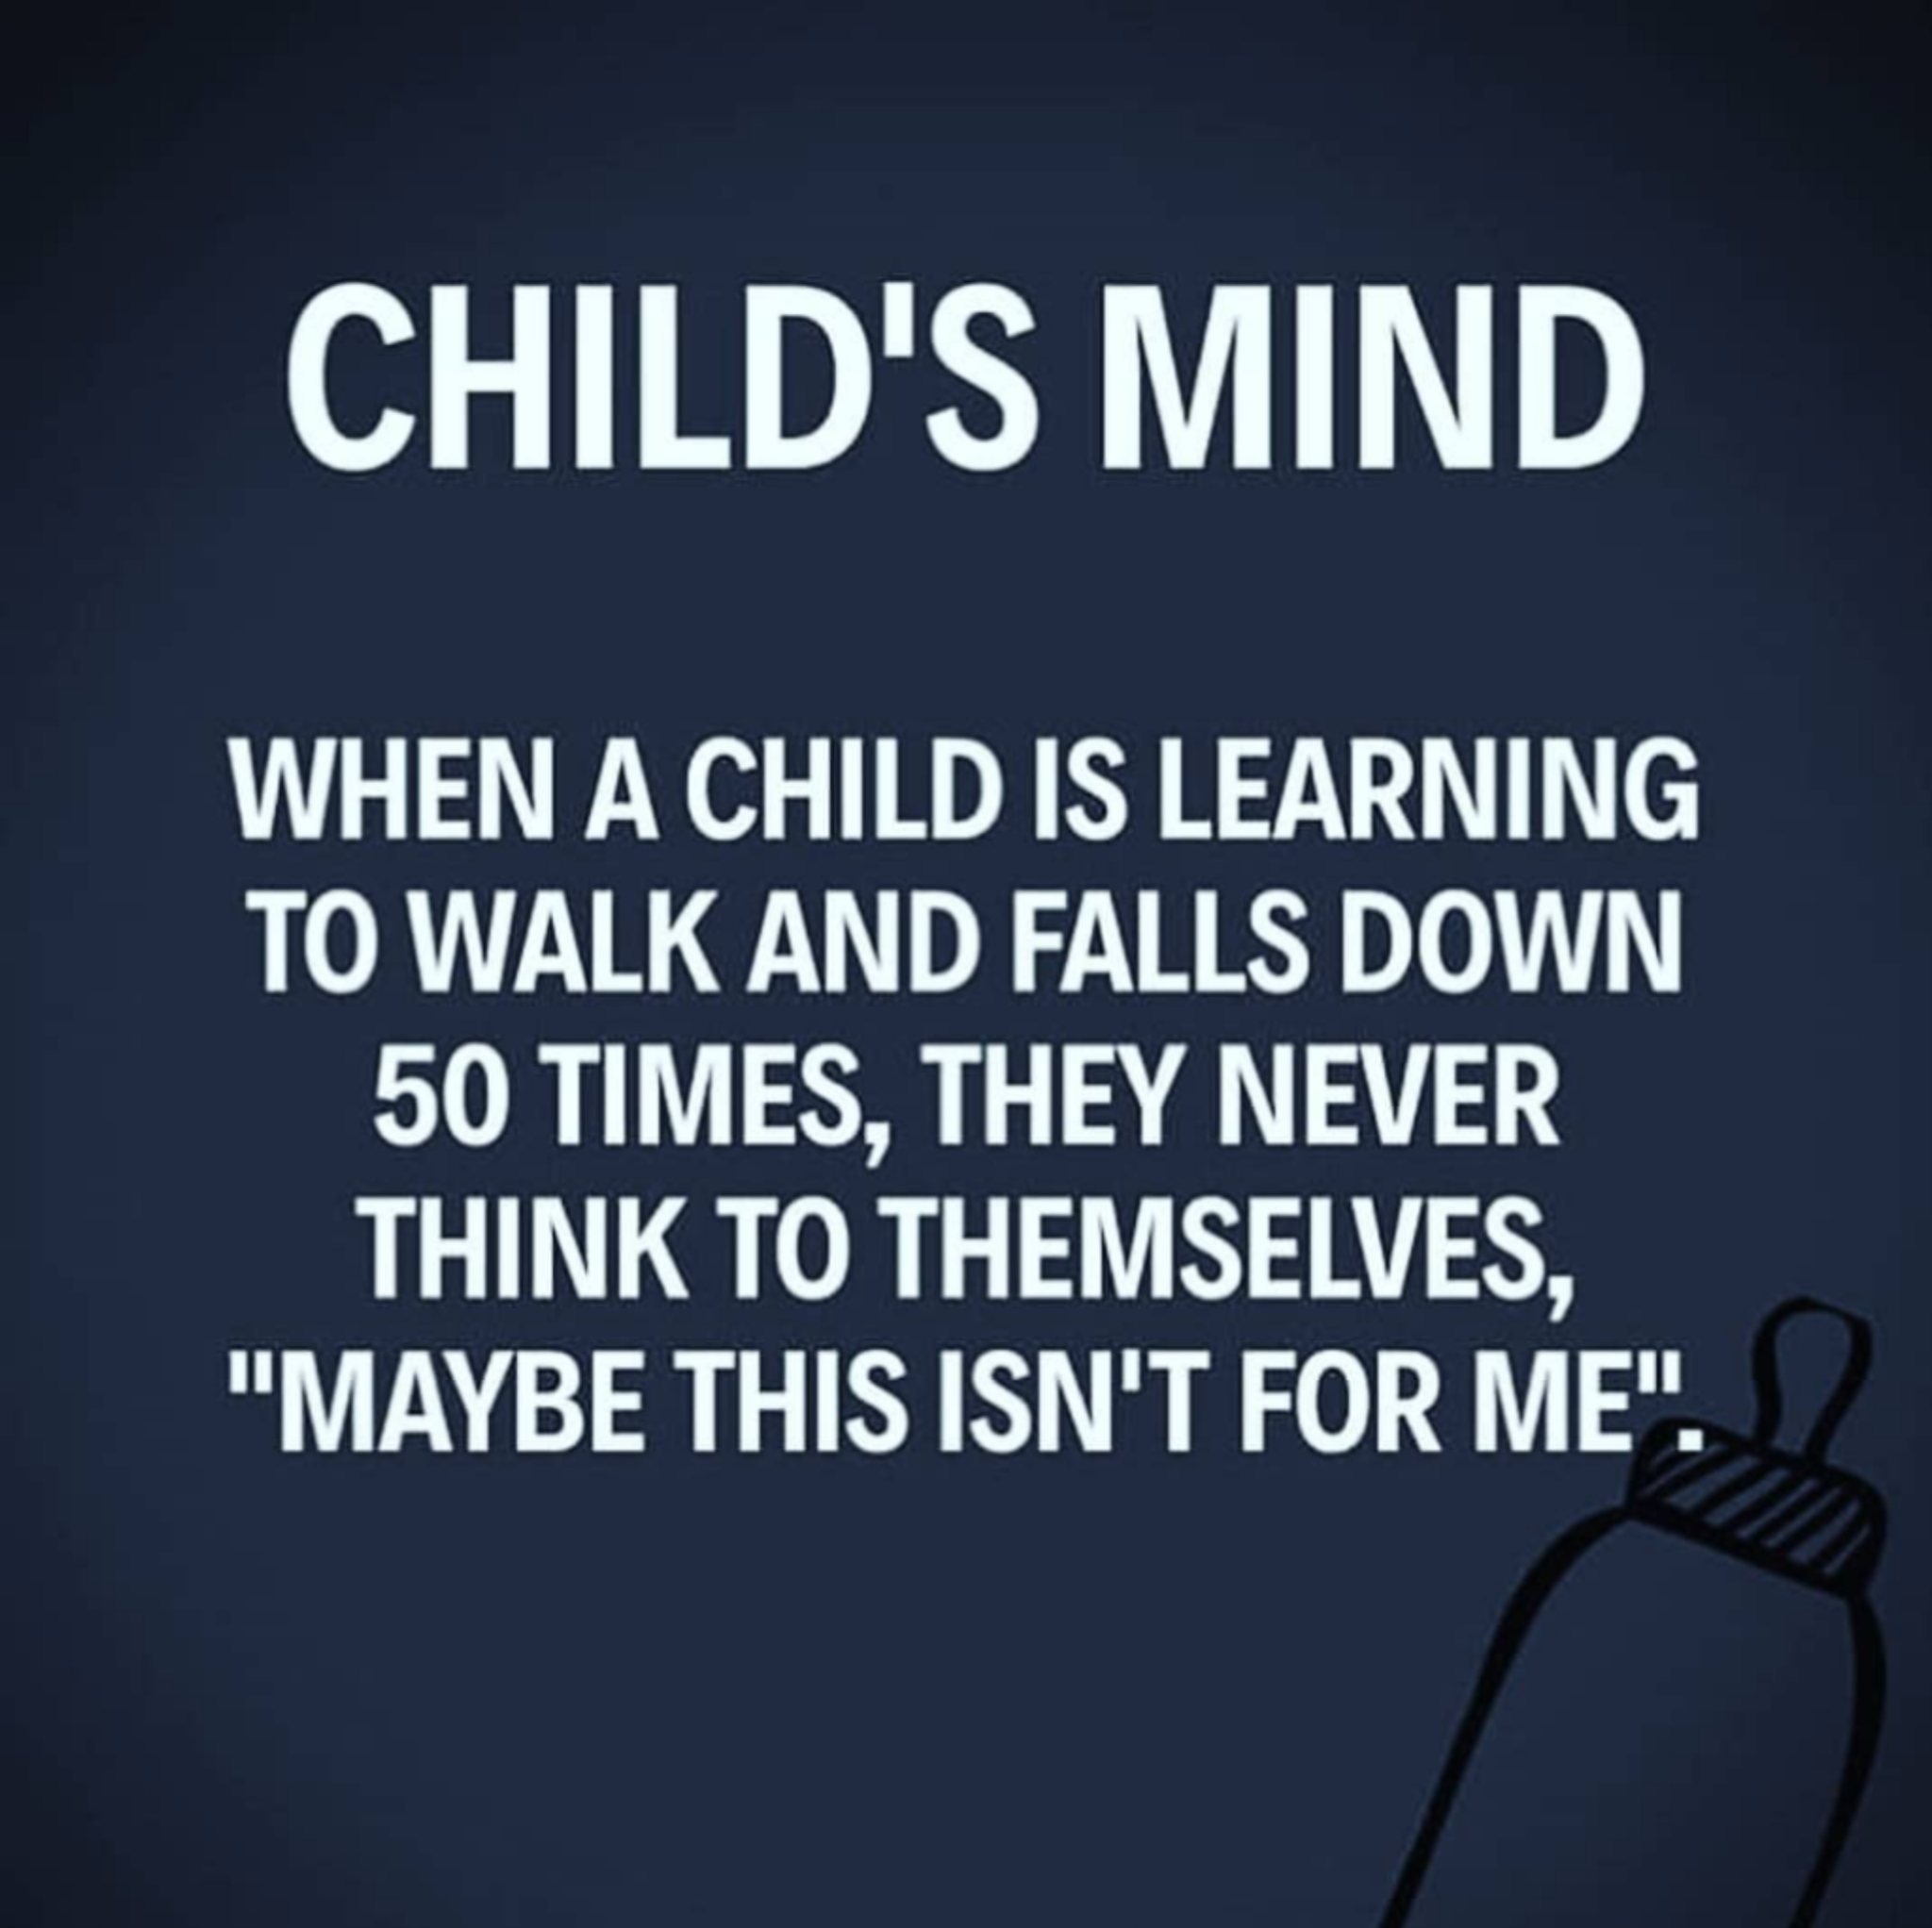 "[image] Child's Mind – When a child is learning to walk and falls down 50x, they never think to themselves ""maybe this isn't for me."""